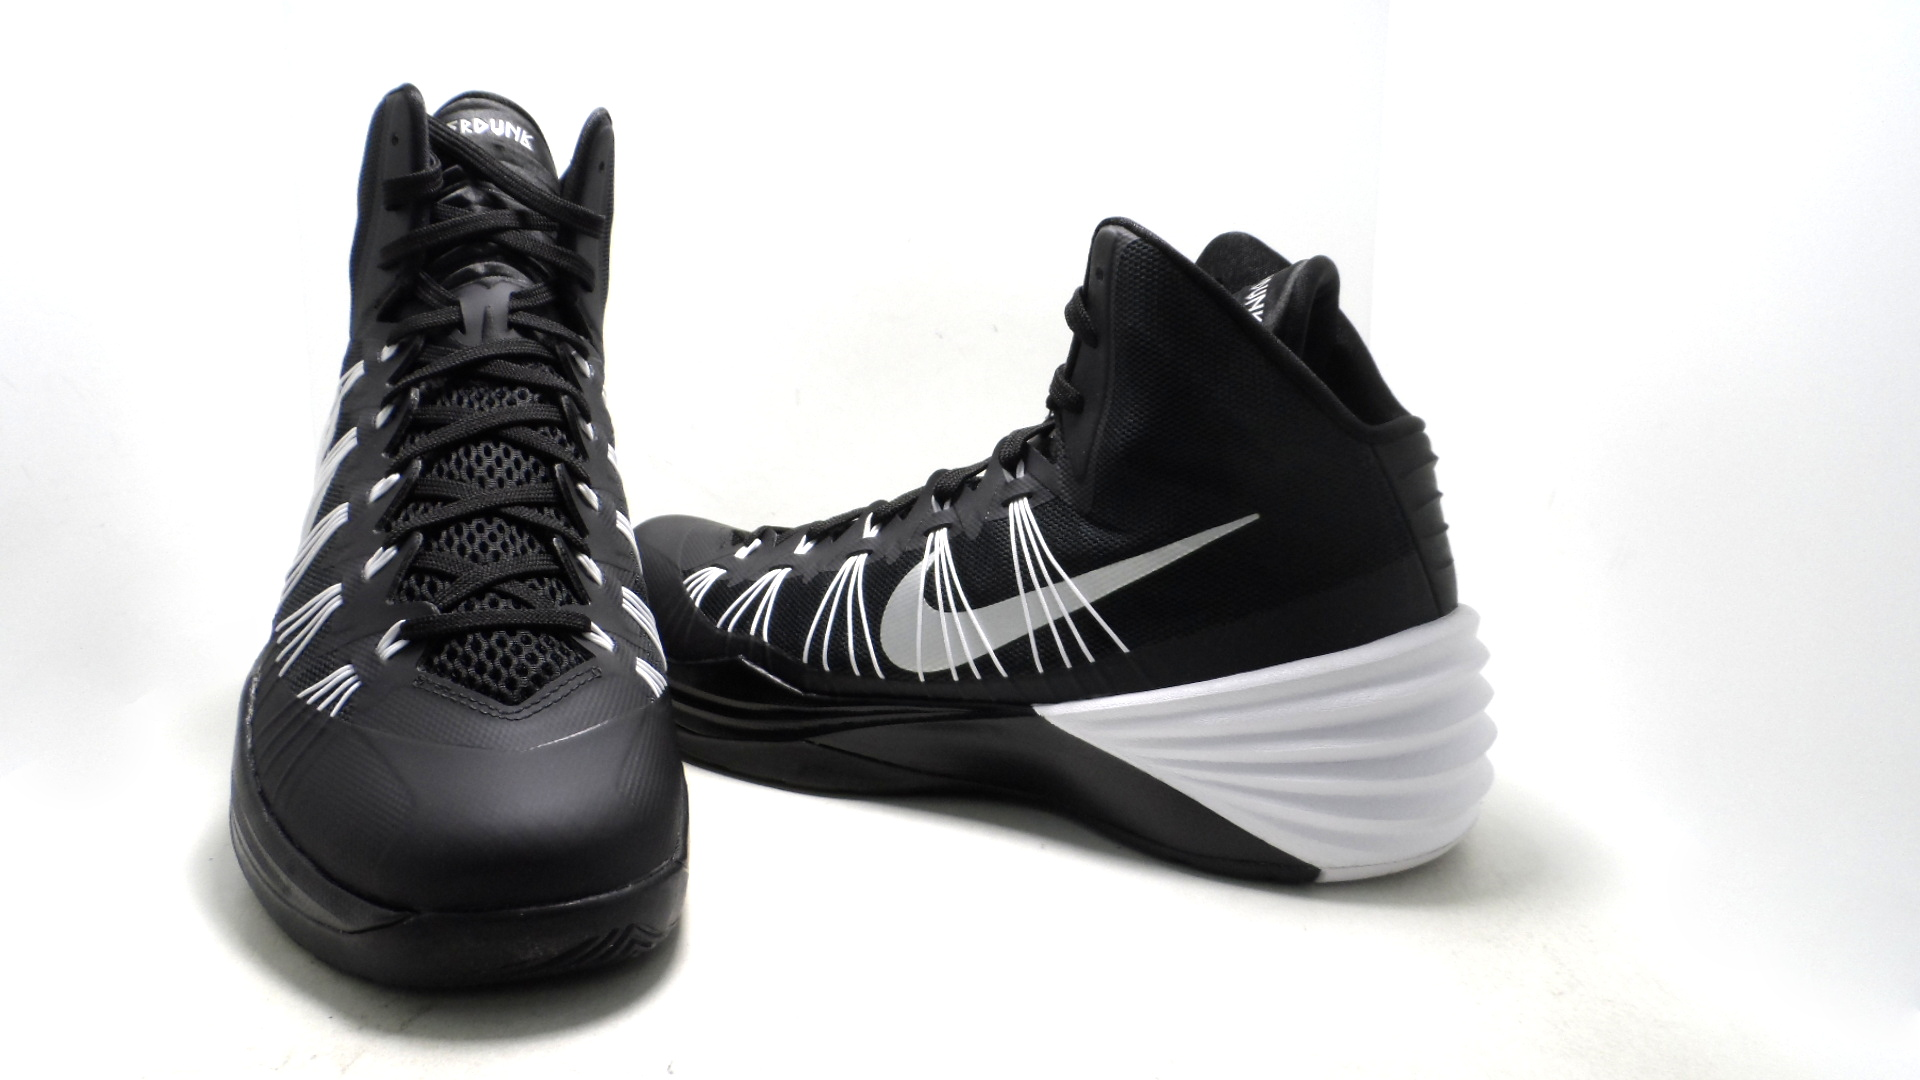 Nike Men's Hyperdunk 2013 TB Basketball Shoes New With Box